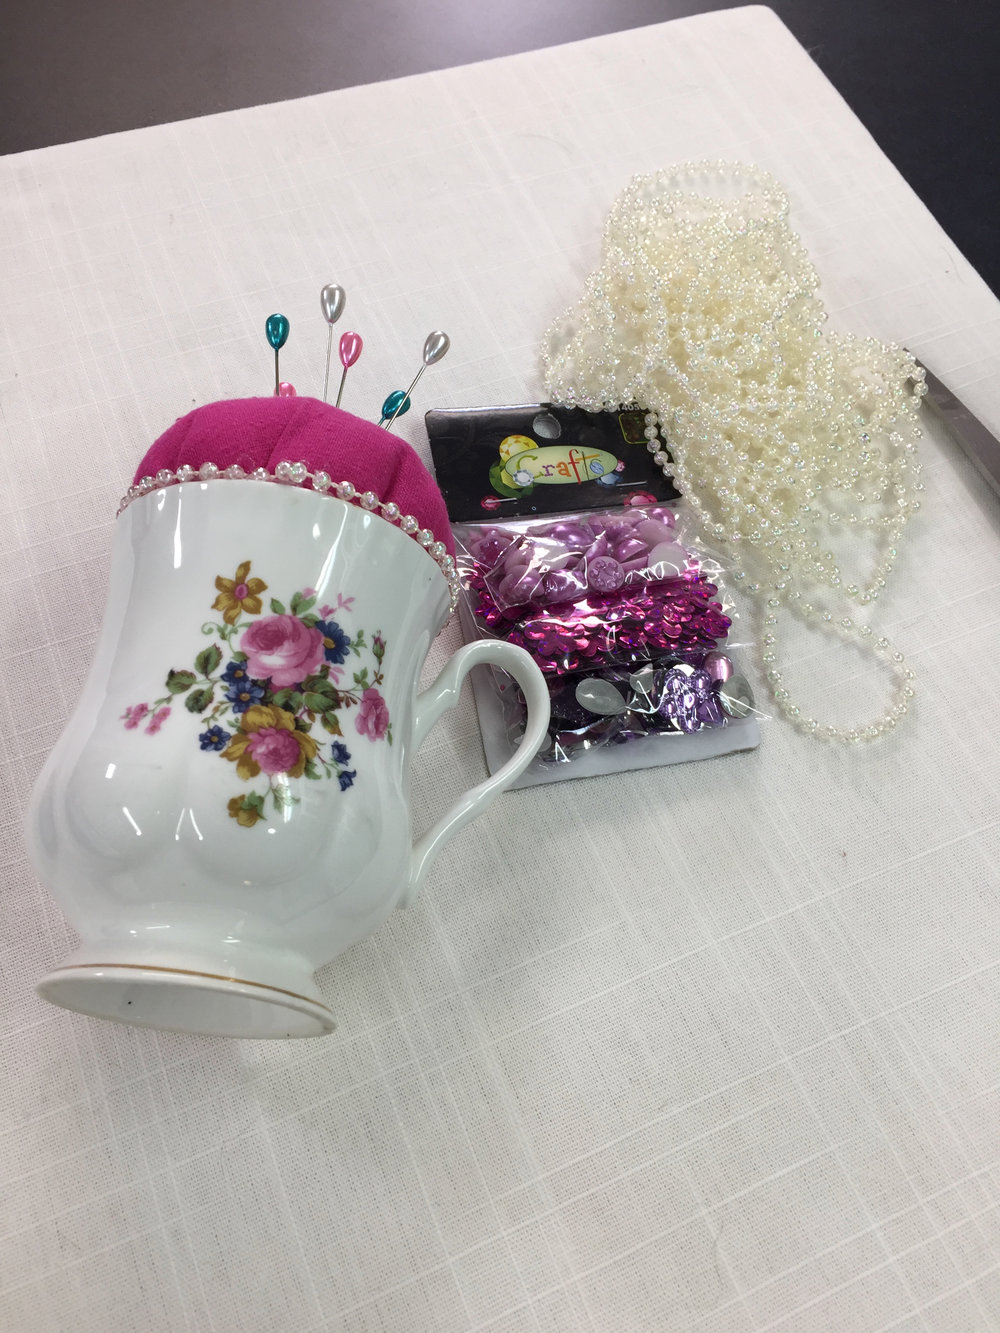 Teacup pincushion.jpg